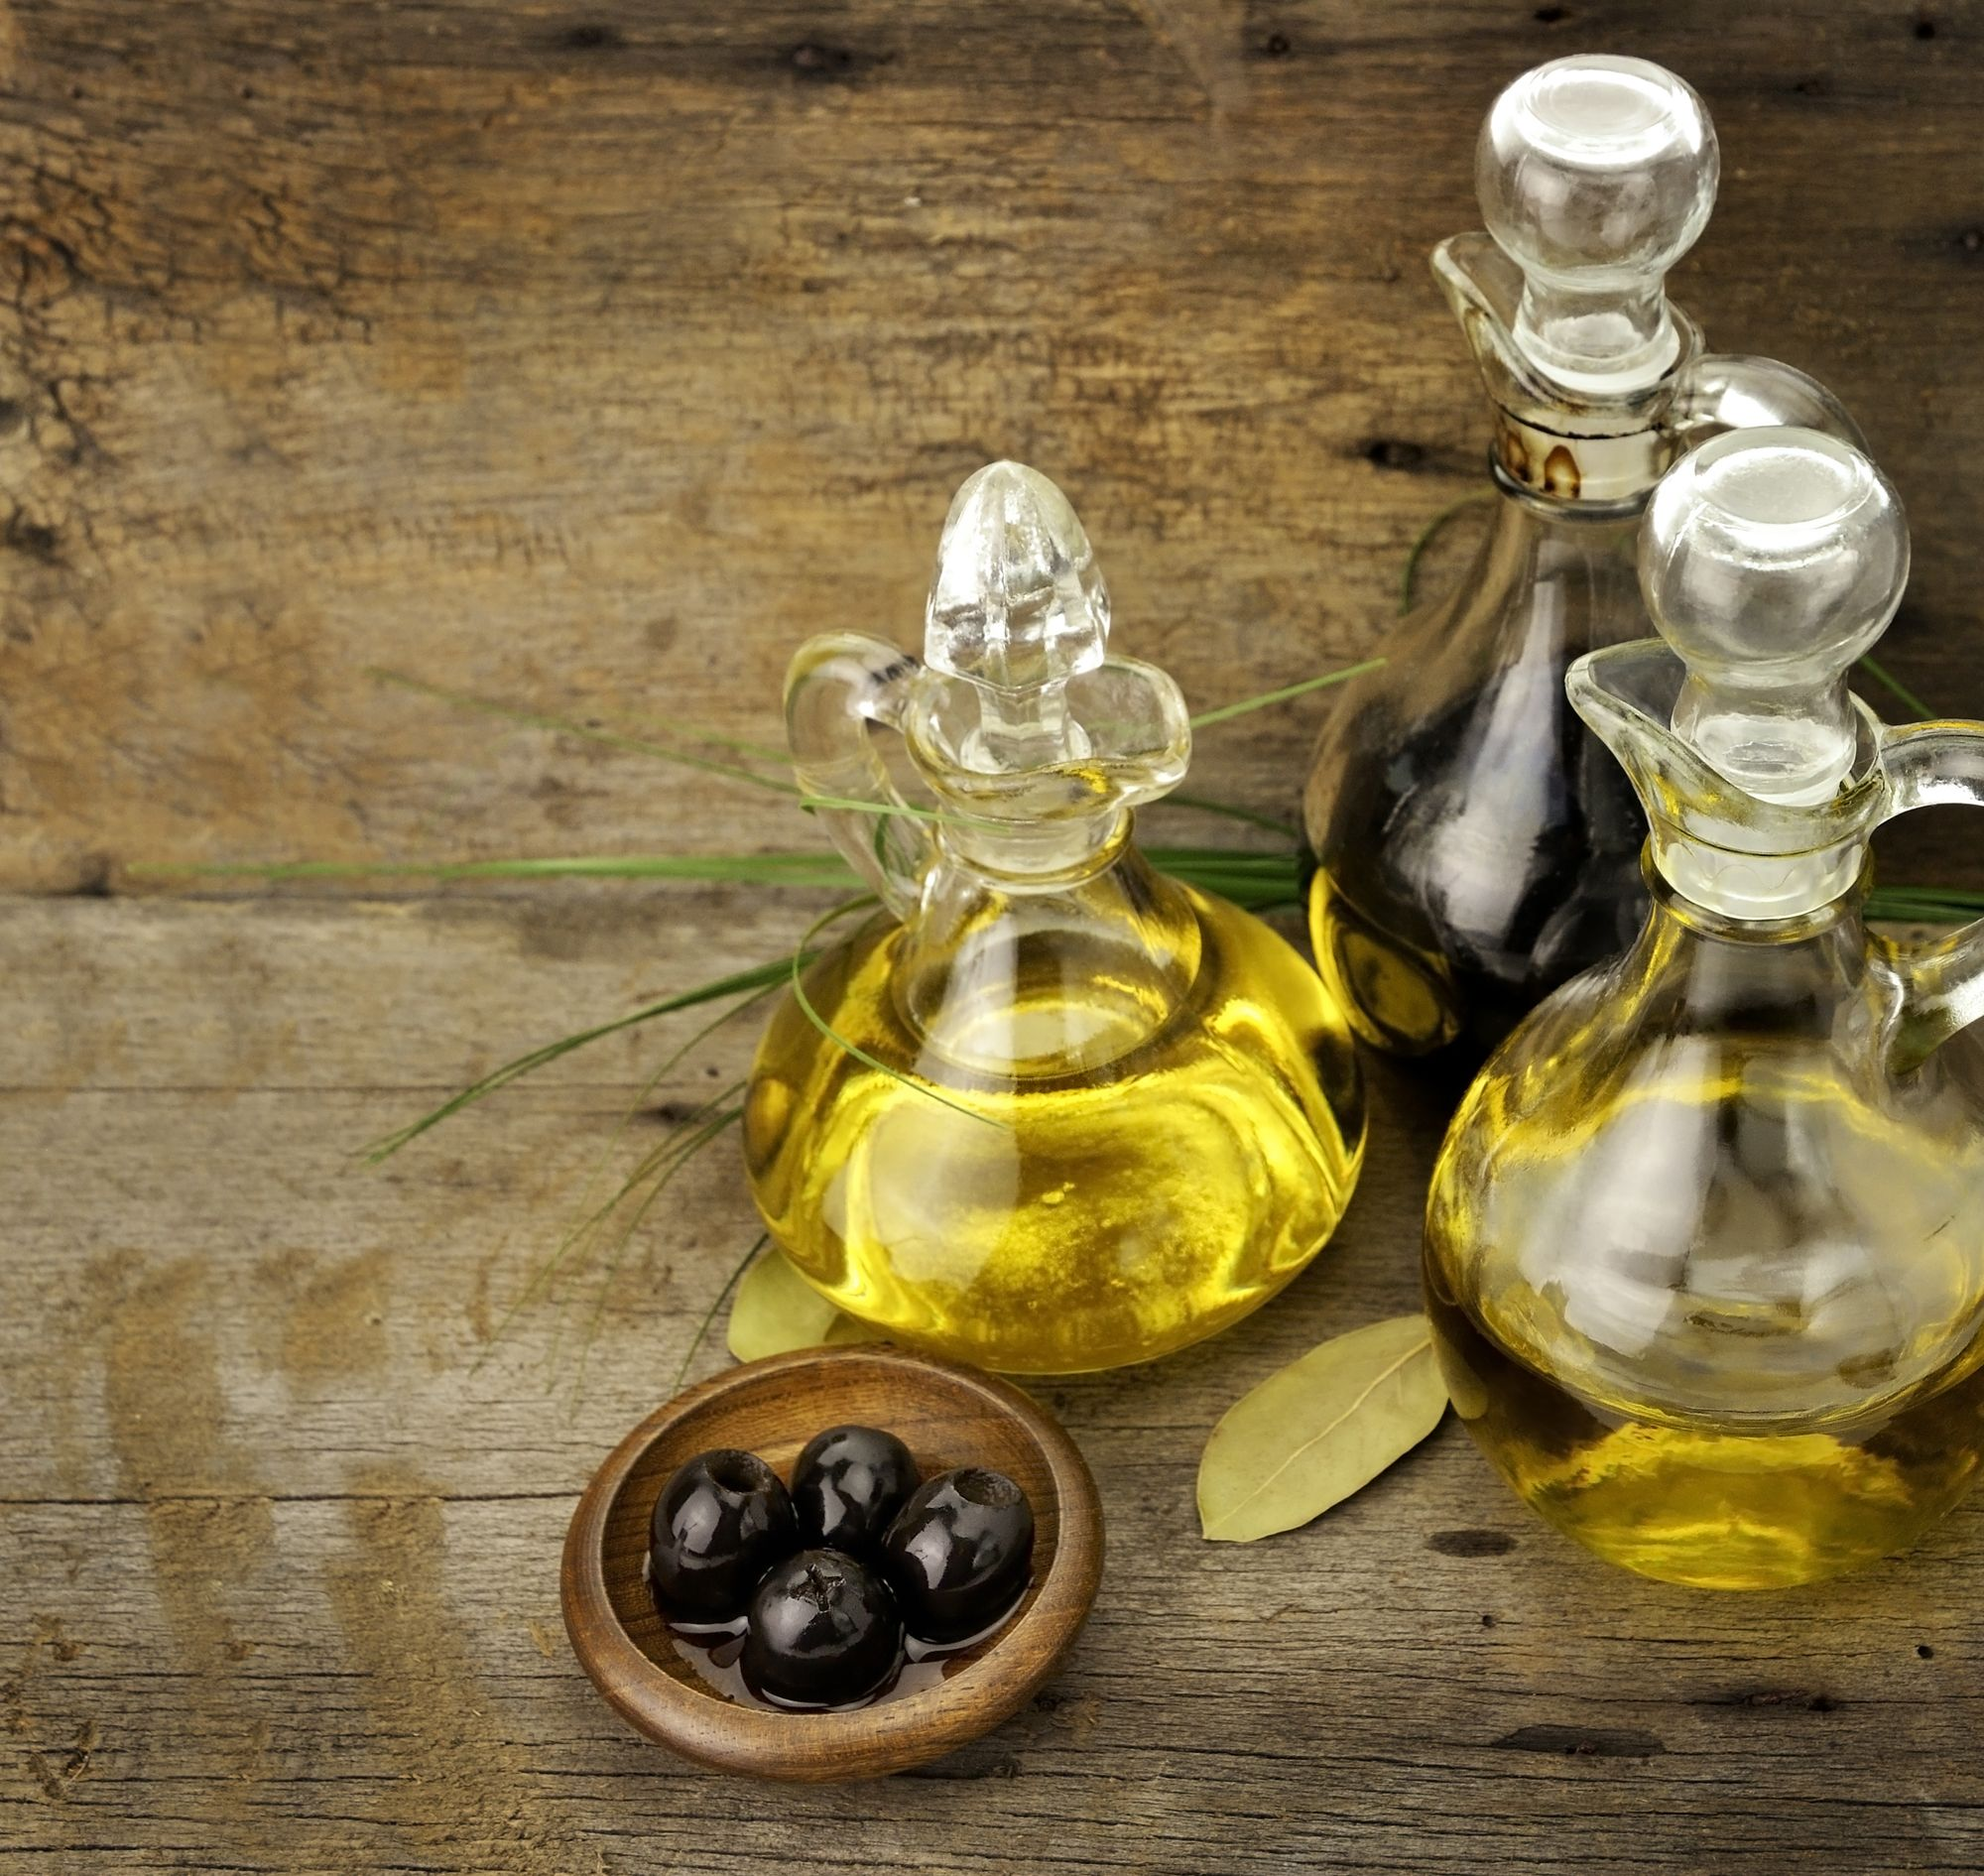 olive oil bottle and olives